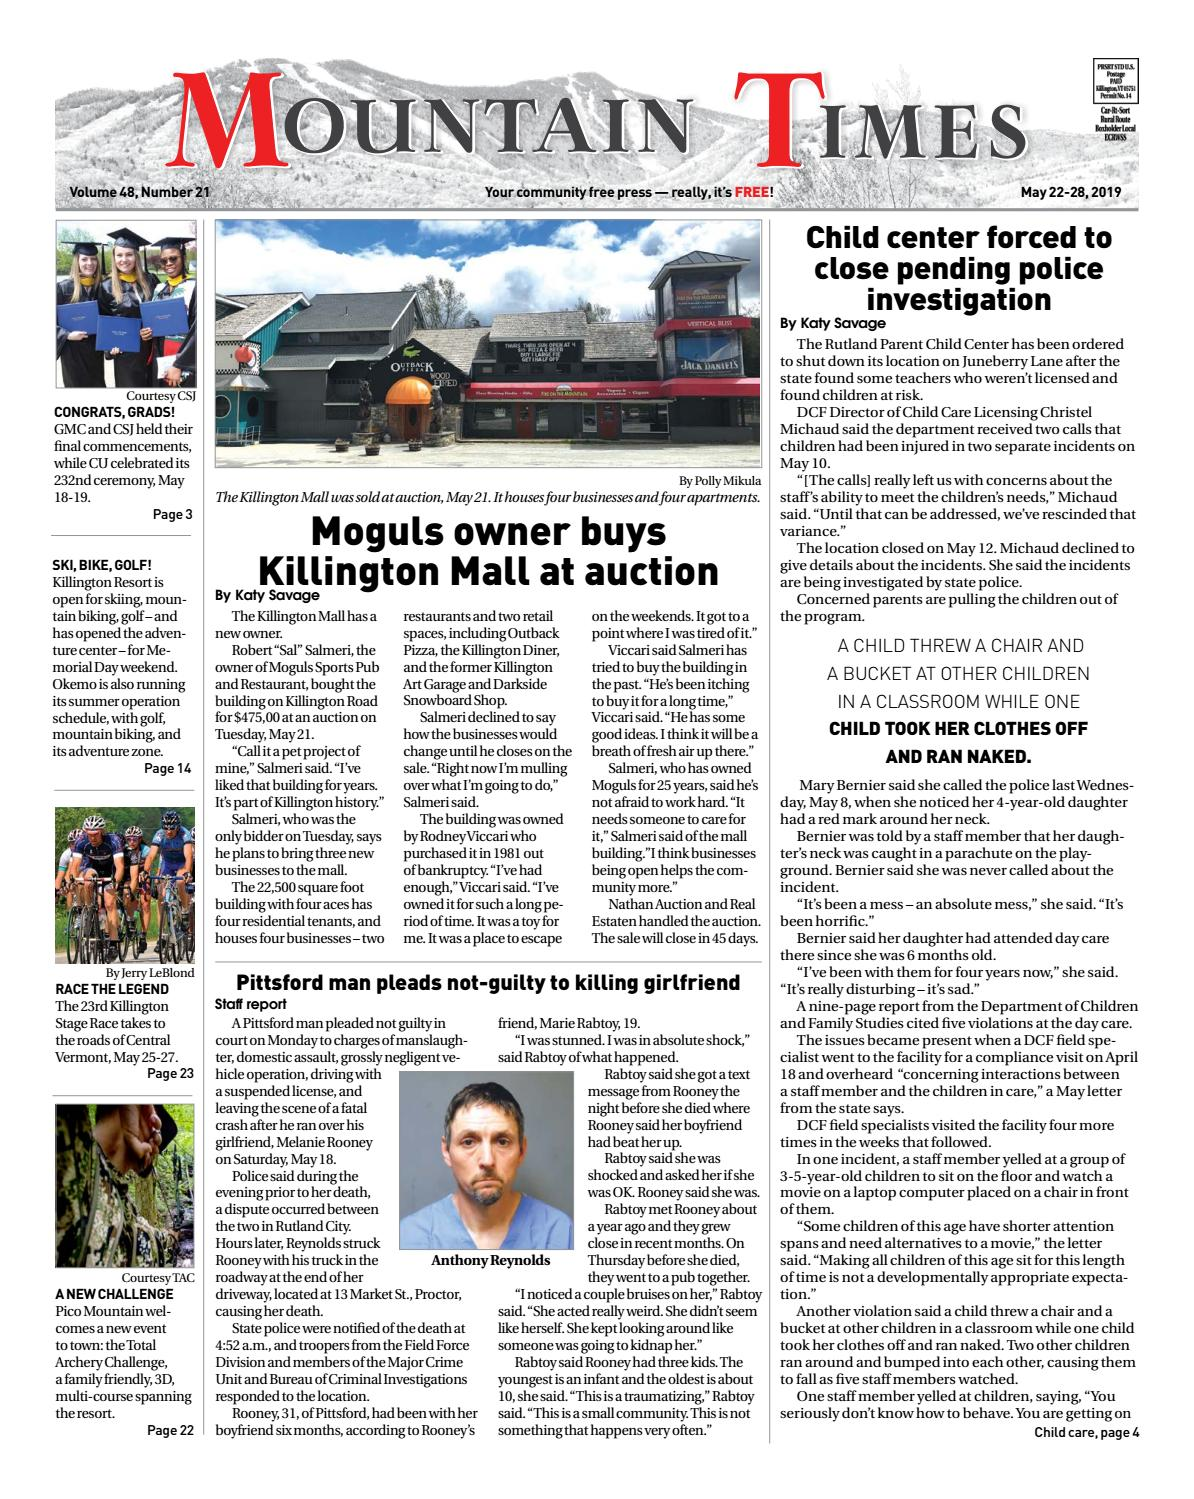 Mountain Times May 22-28, 2019 by Polly Lynn - issuu